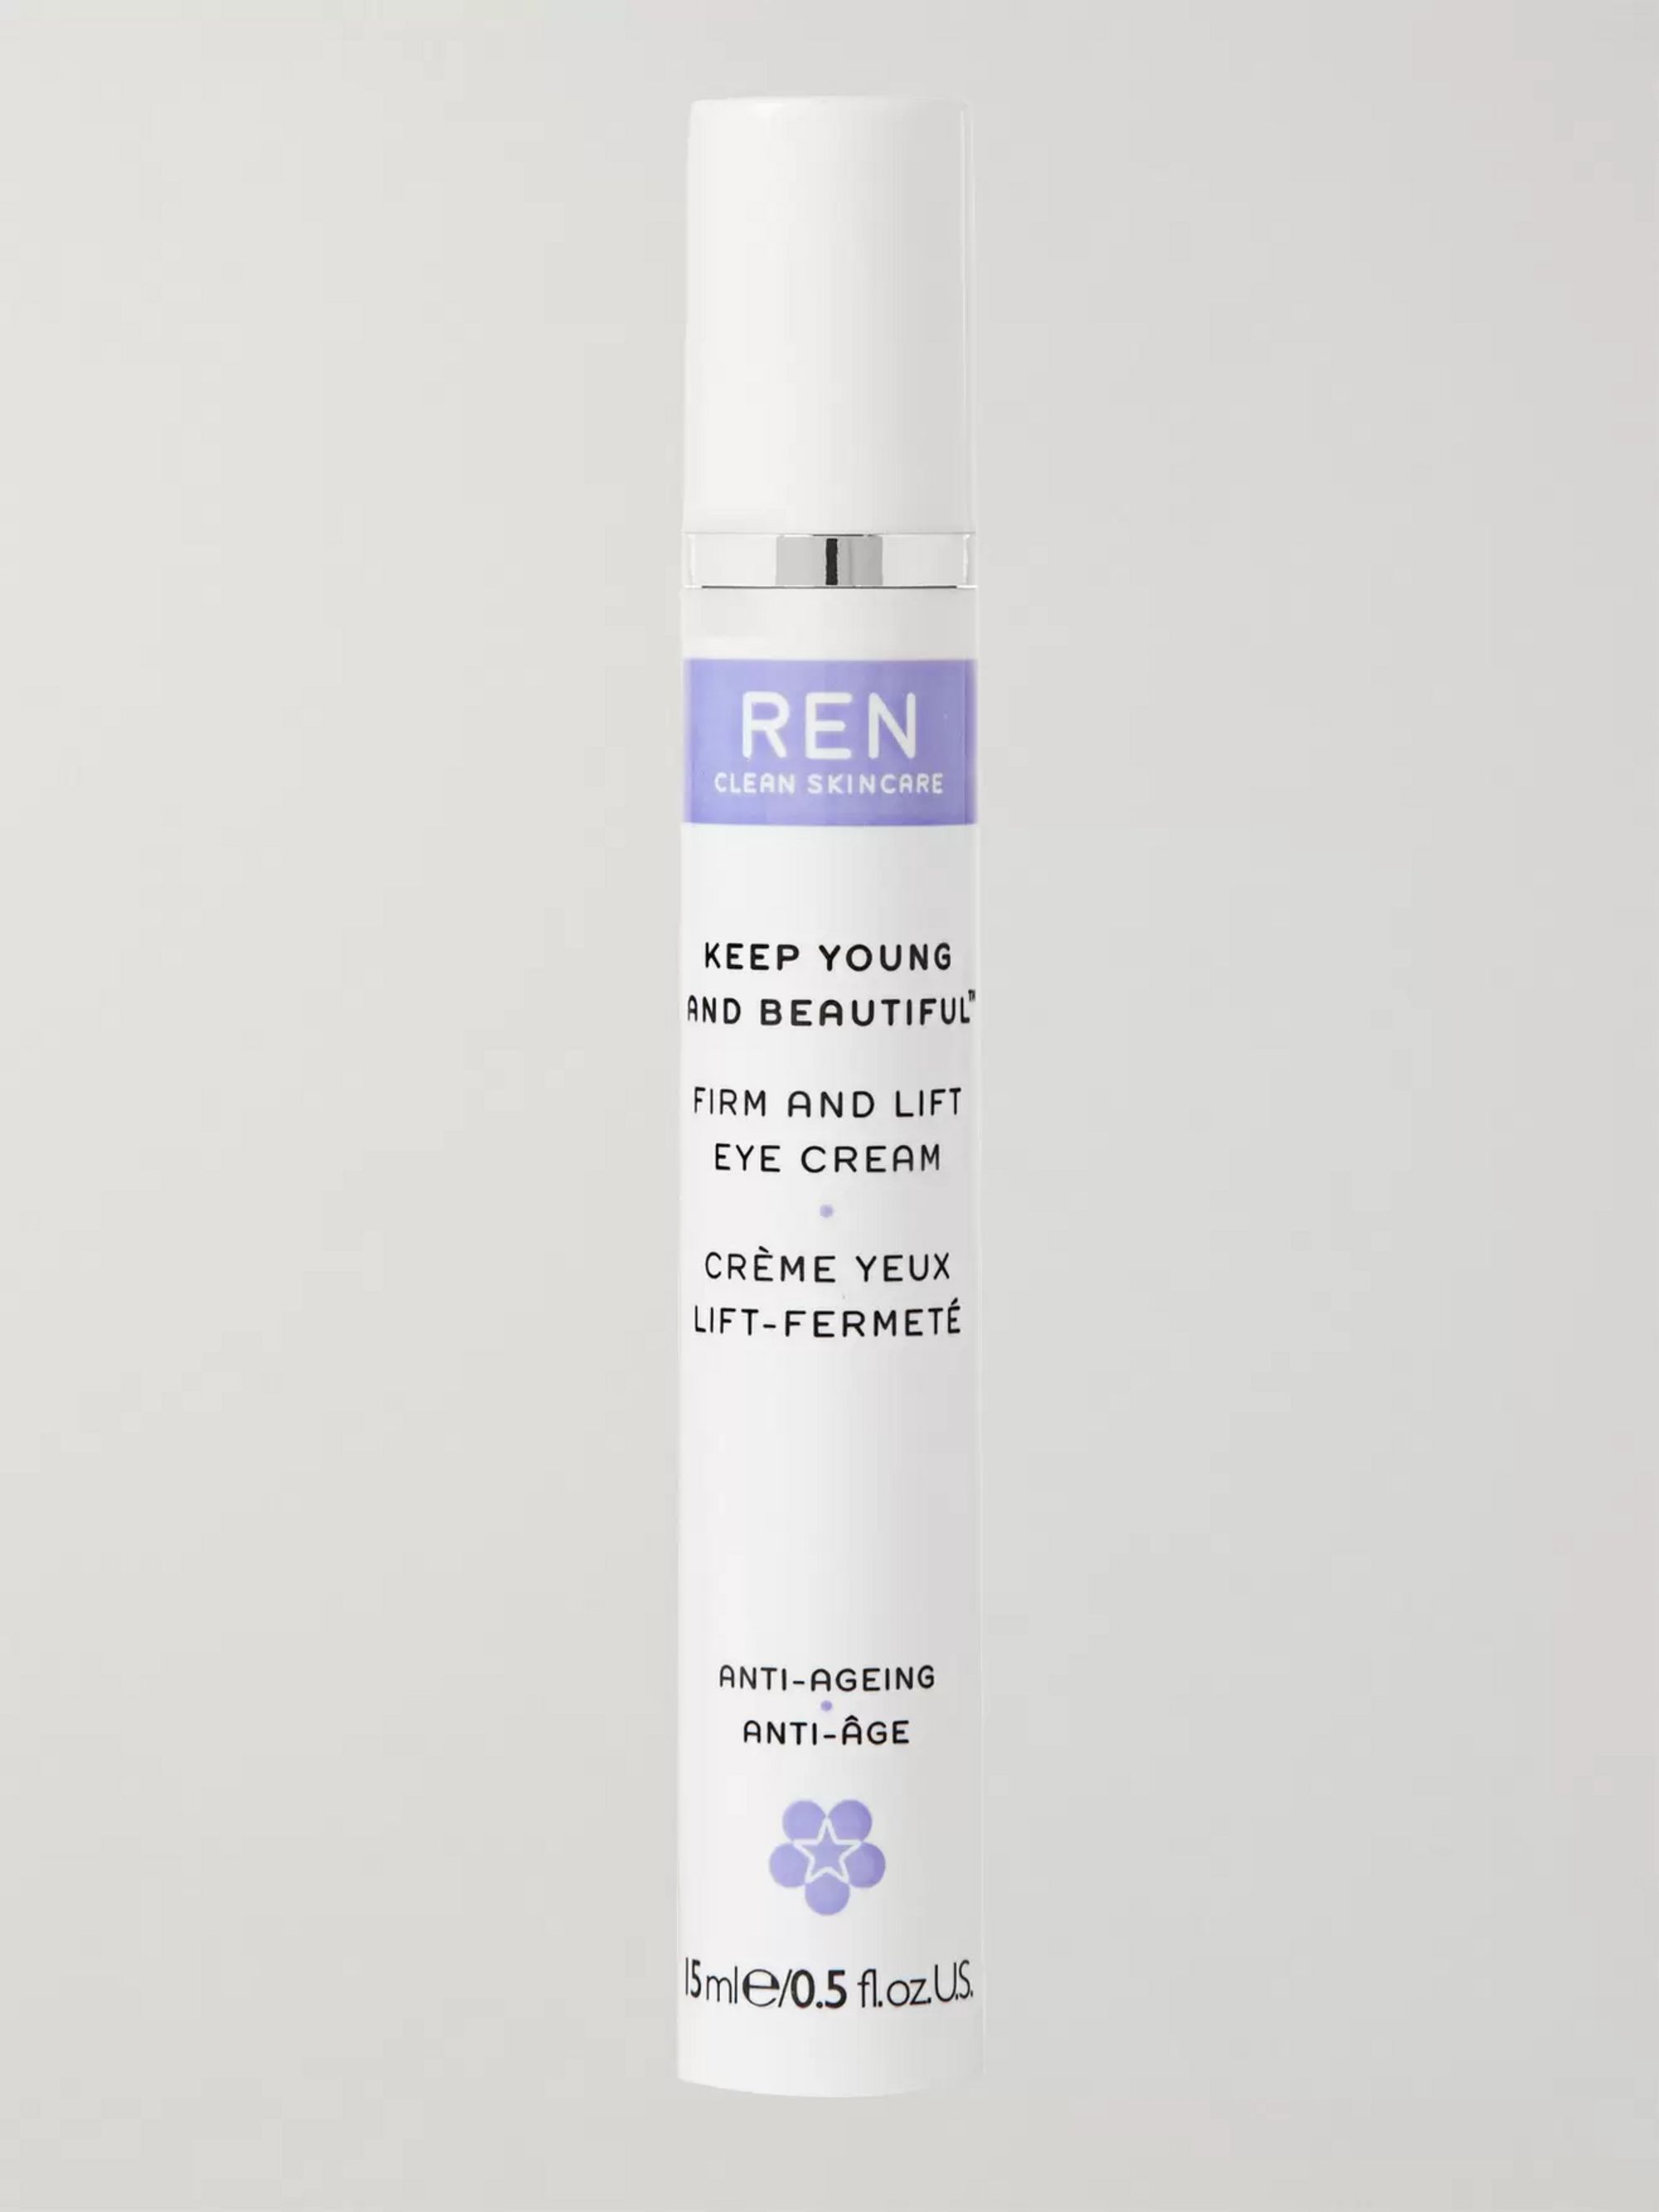 REN Clean Skincare Firm and Lift Eye Cream, 15ml